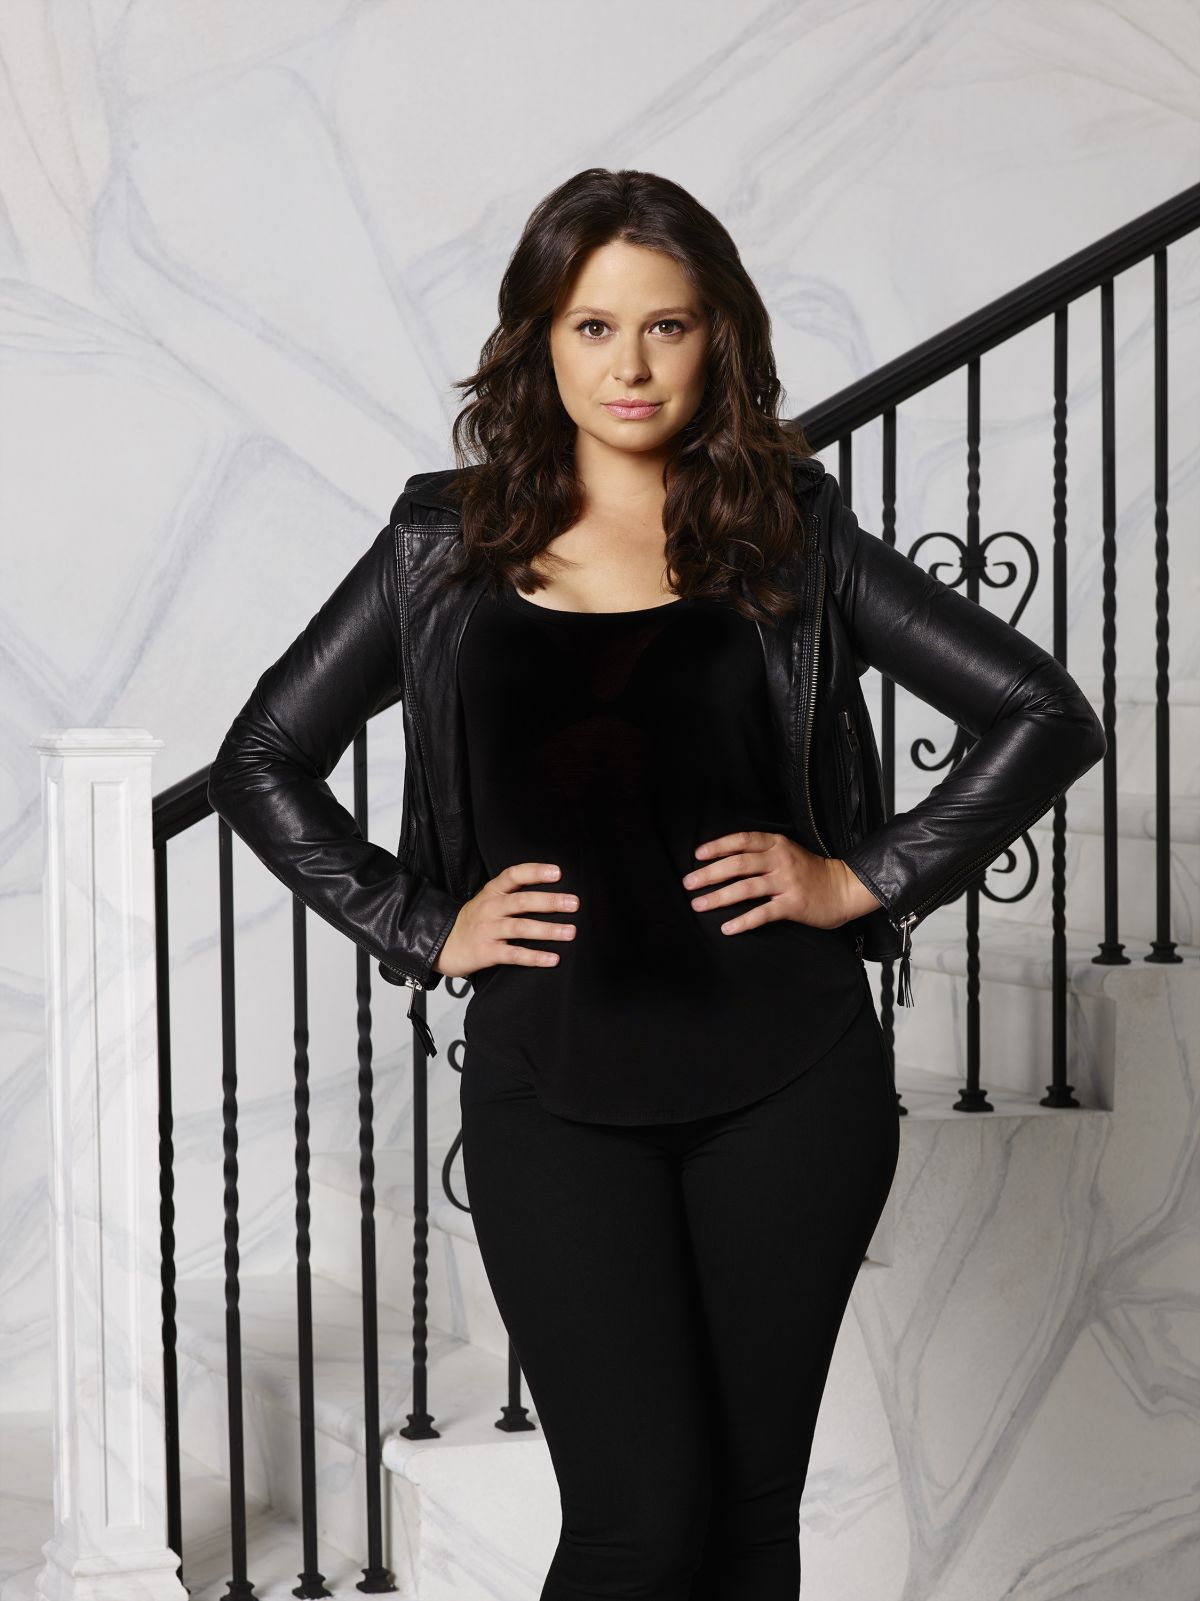 KATIE LOWES - Scandal Season 4 Promos